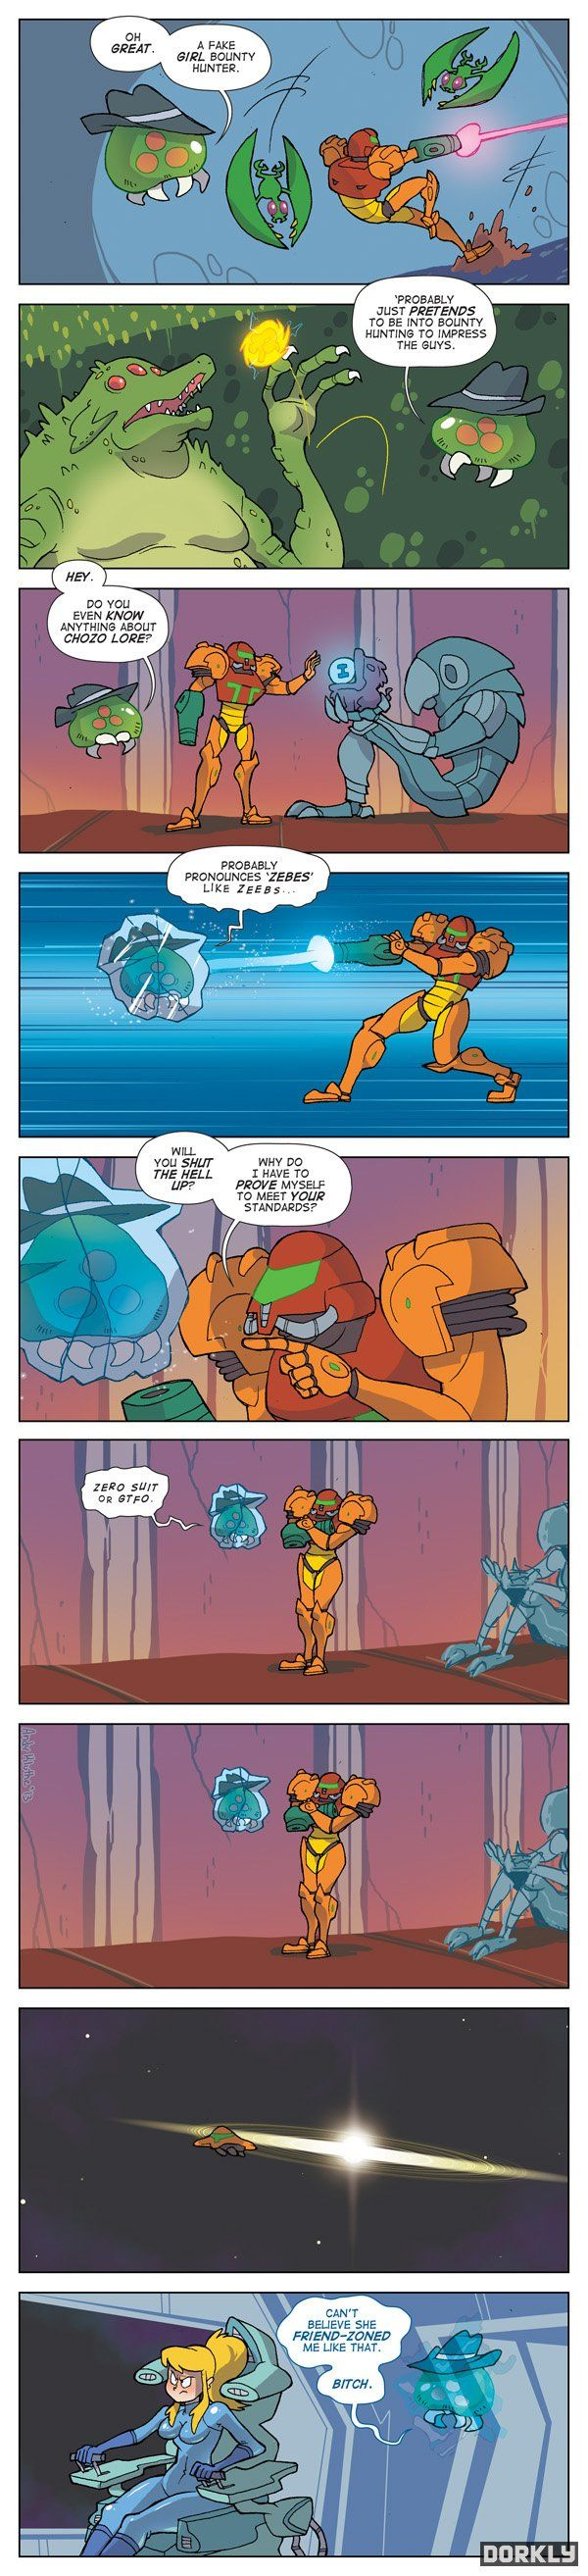 "Samus. Remember when I found out she was a woman, when the suit came off in the game, I was a kid at the time.  ""what? It's a girl? ... Cool"""